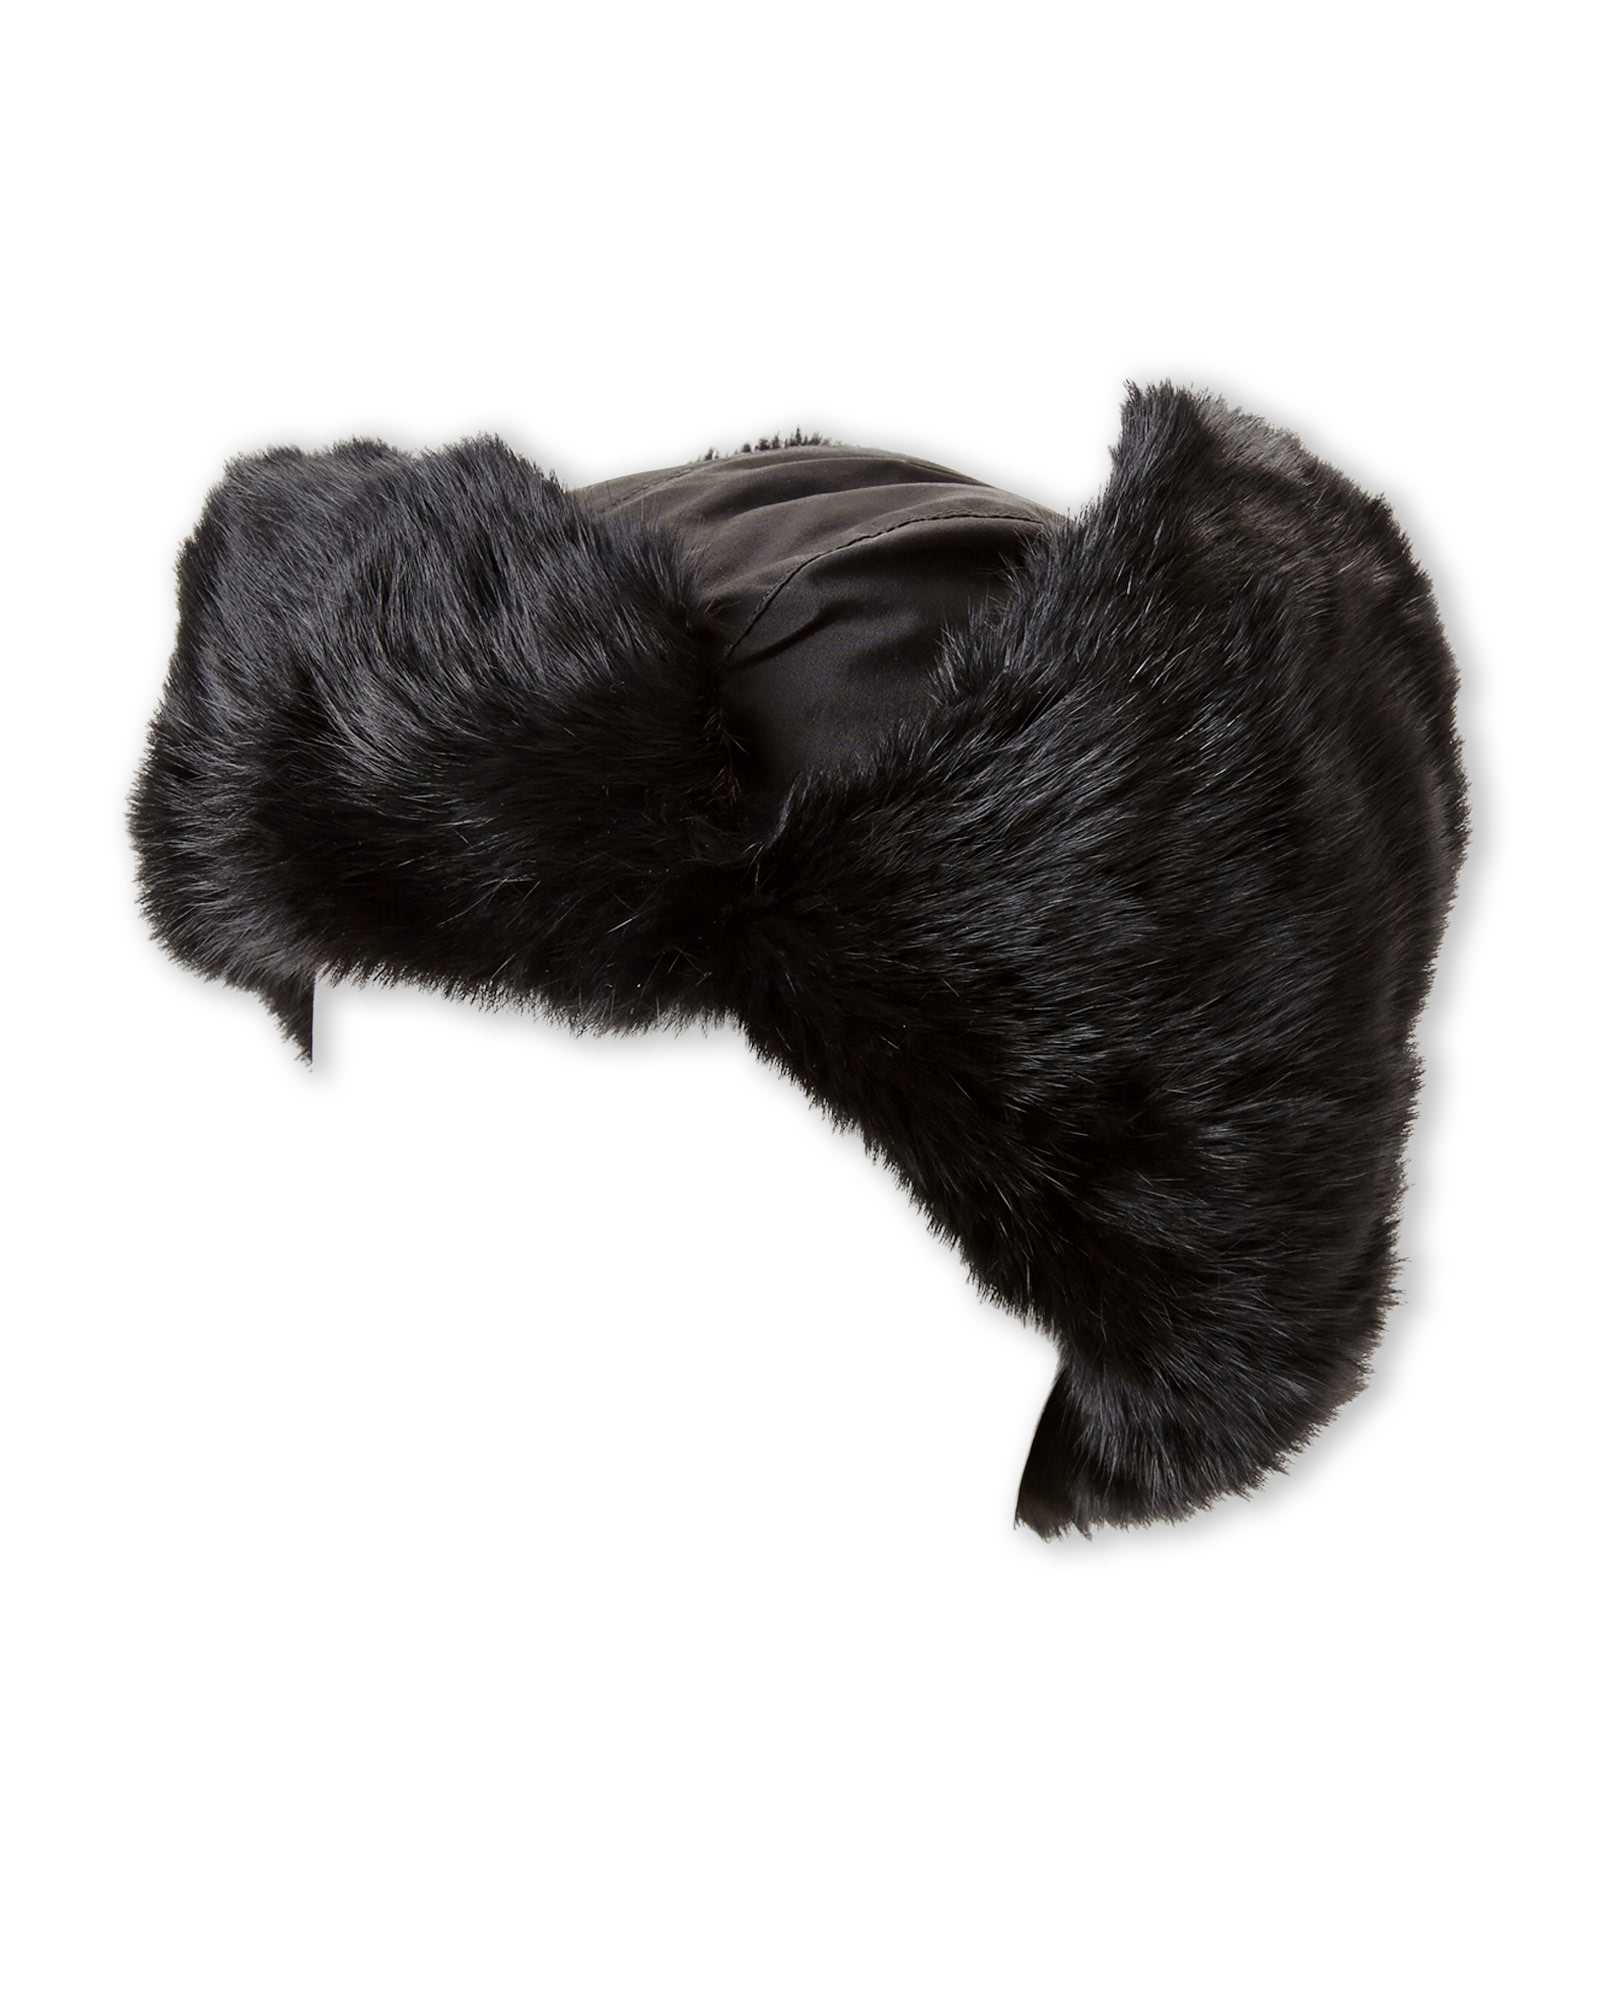 b6a4e673c61 Lyst - Crown Cap Real Rabbit Fur Lined Bomber Hat in Black for Men